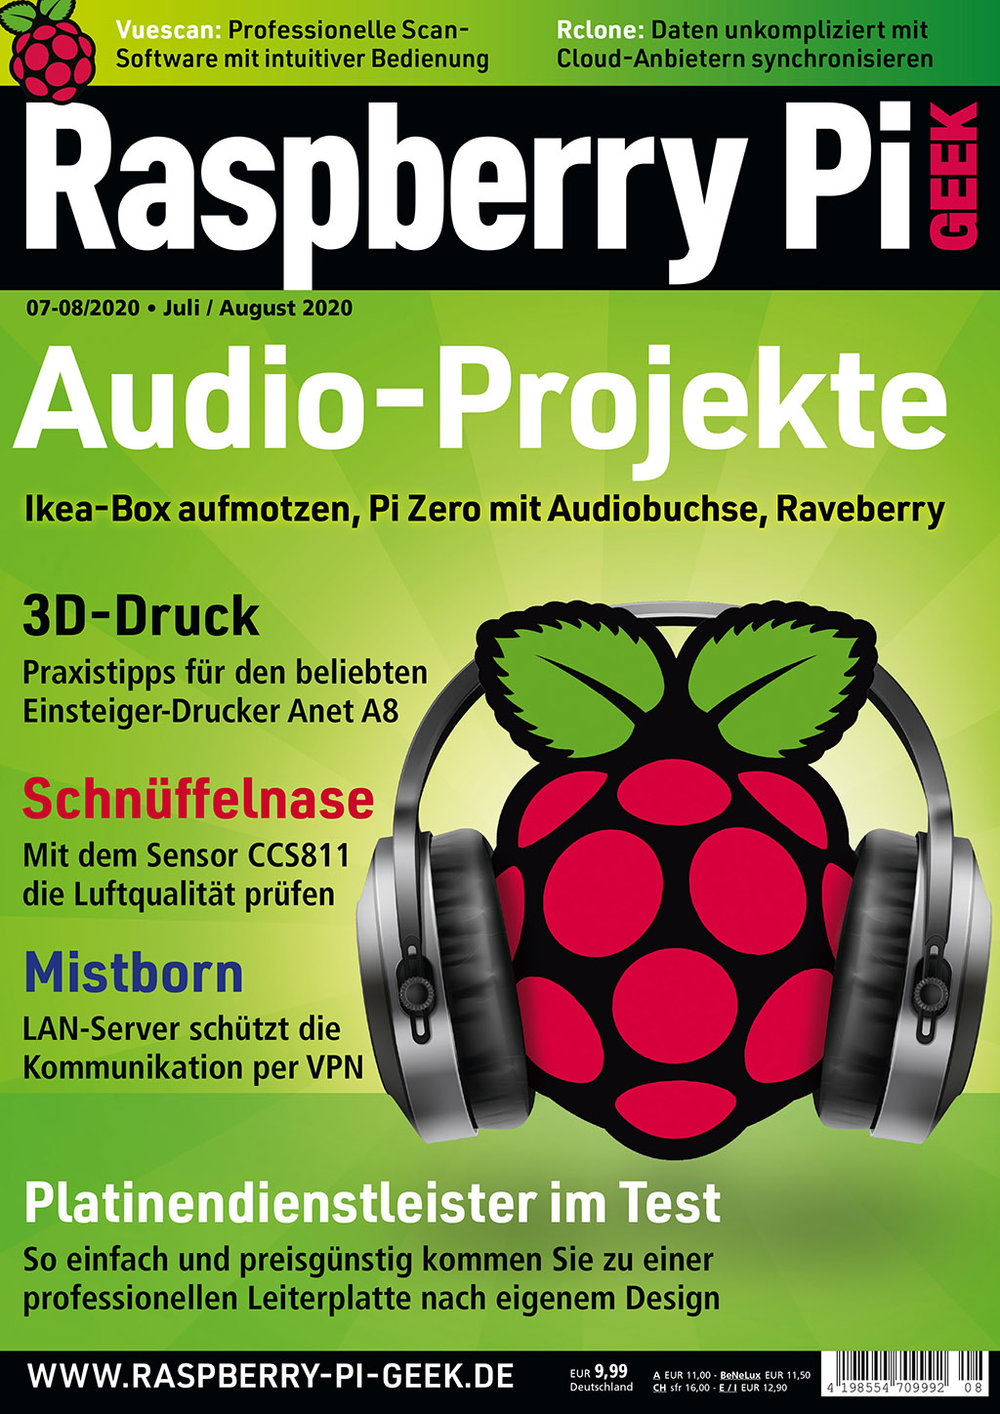 Raspberry Pi Geek 07-08/2020